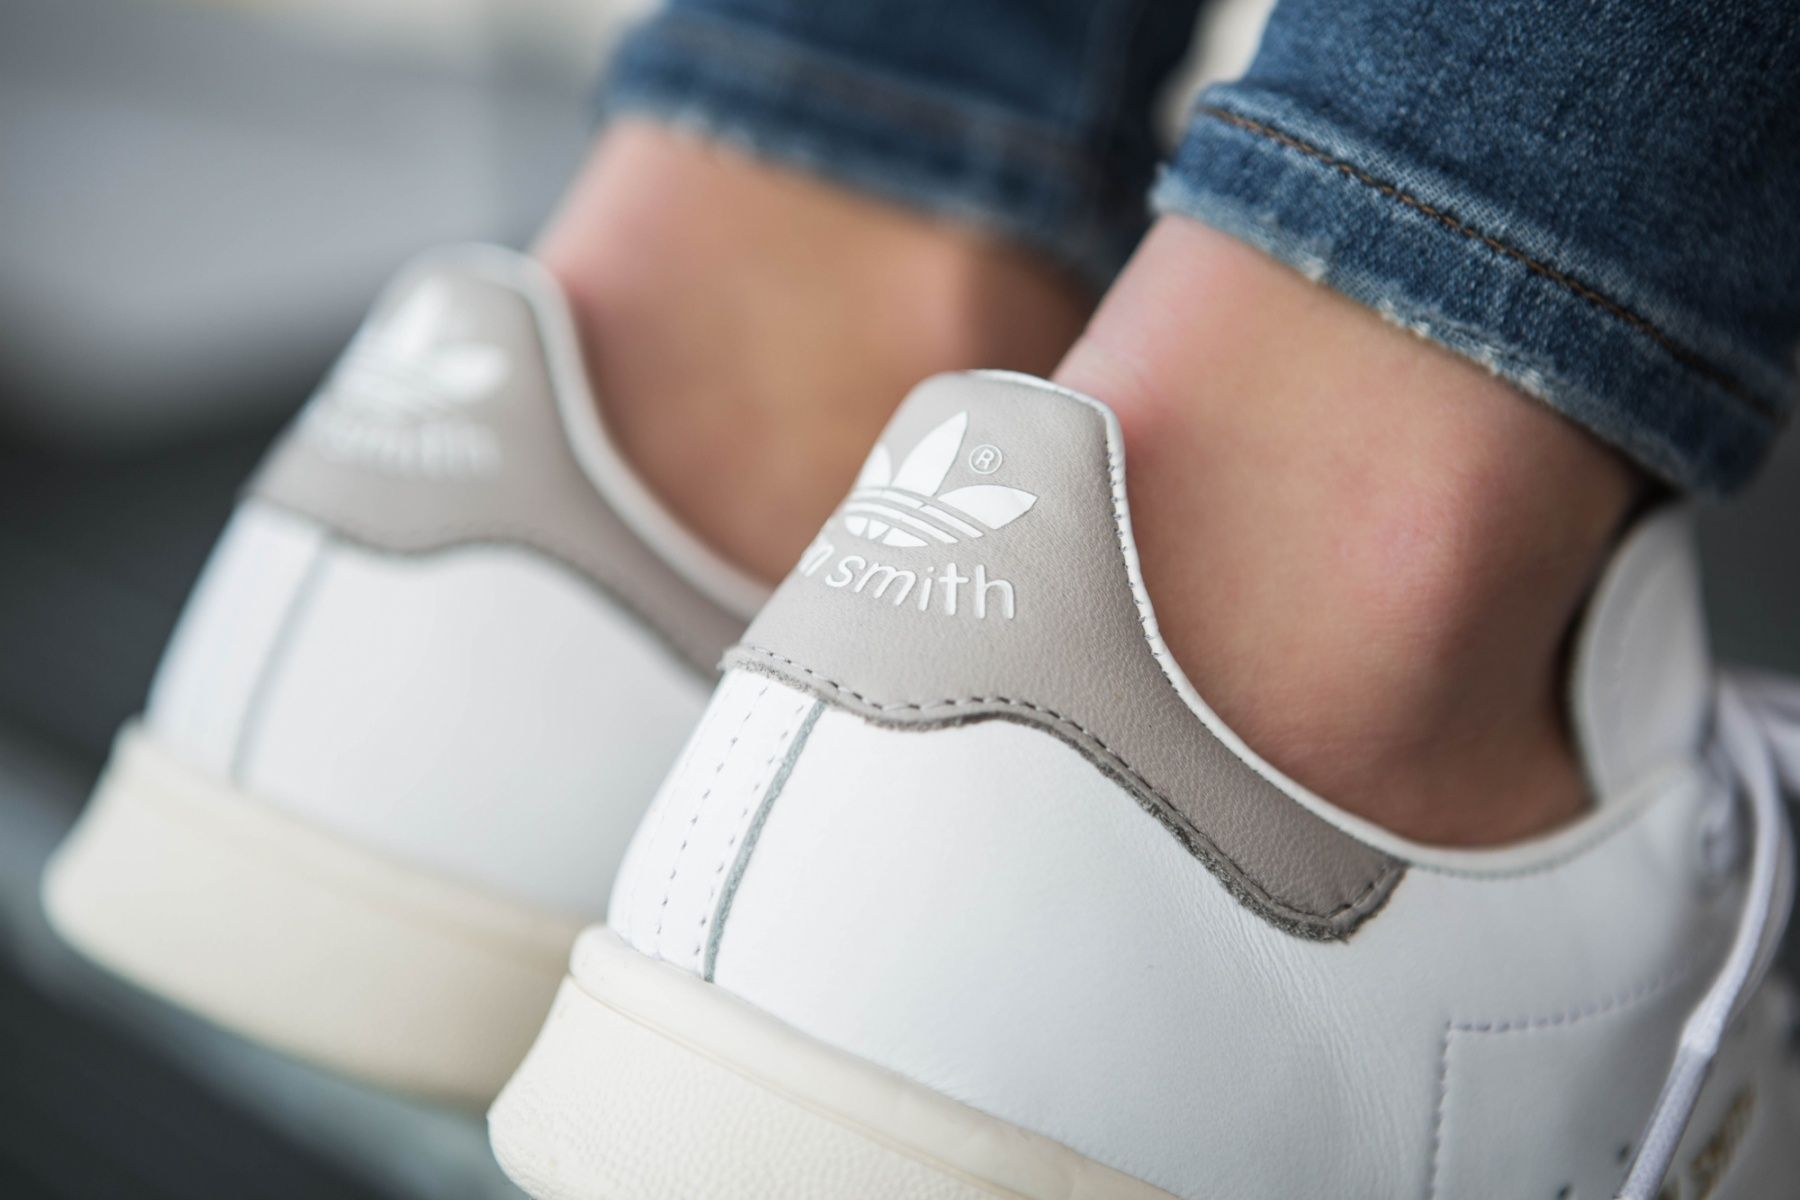 promo code d331a 01f10 Image result for adidas stan smith | Shoes in 2019 | Stan ...